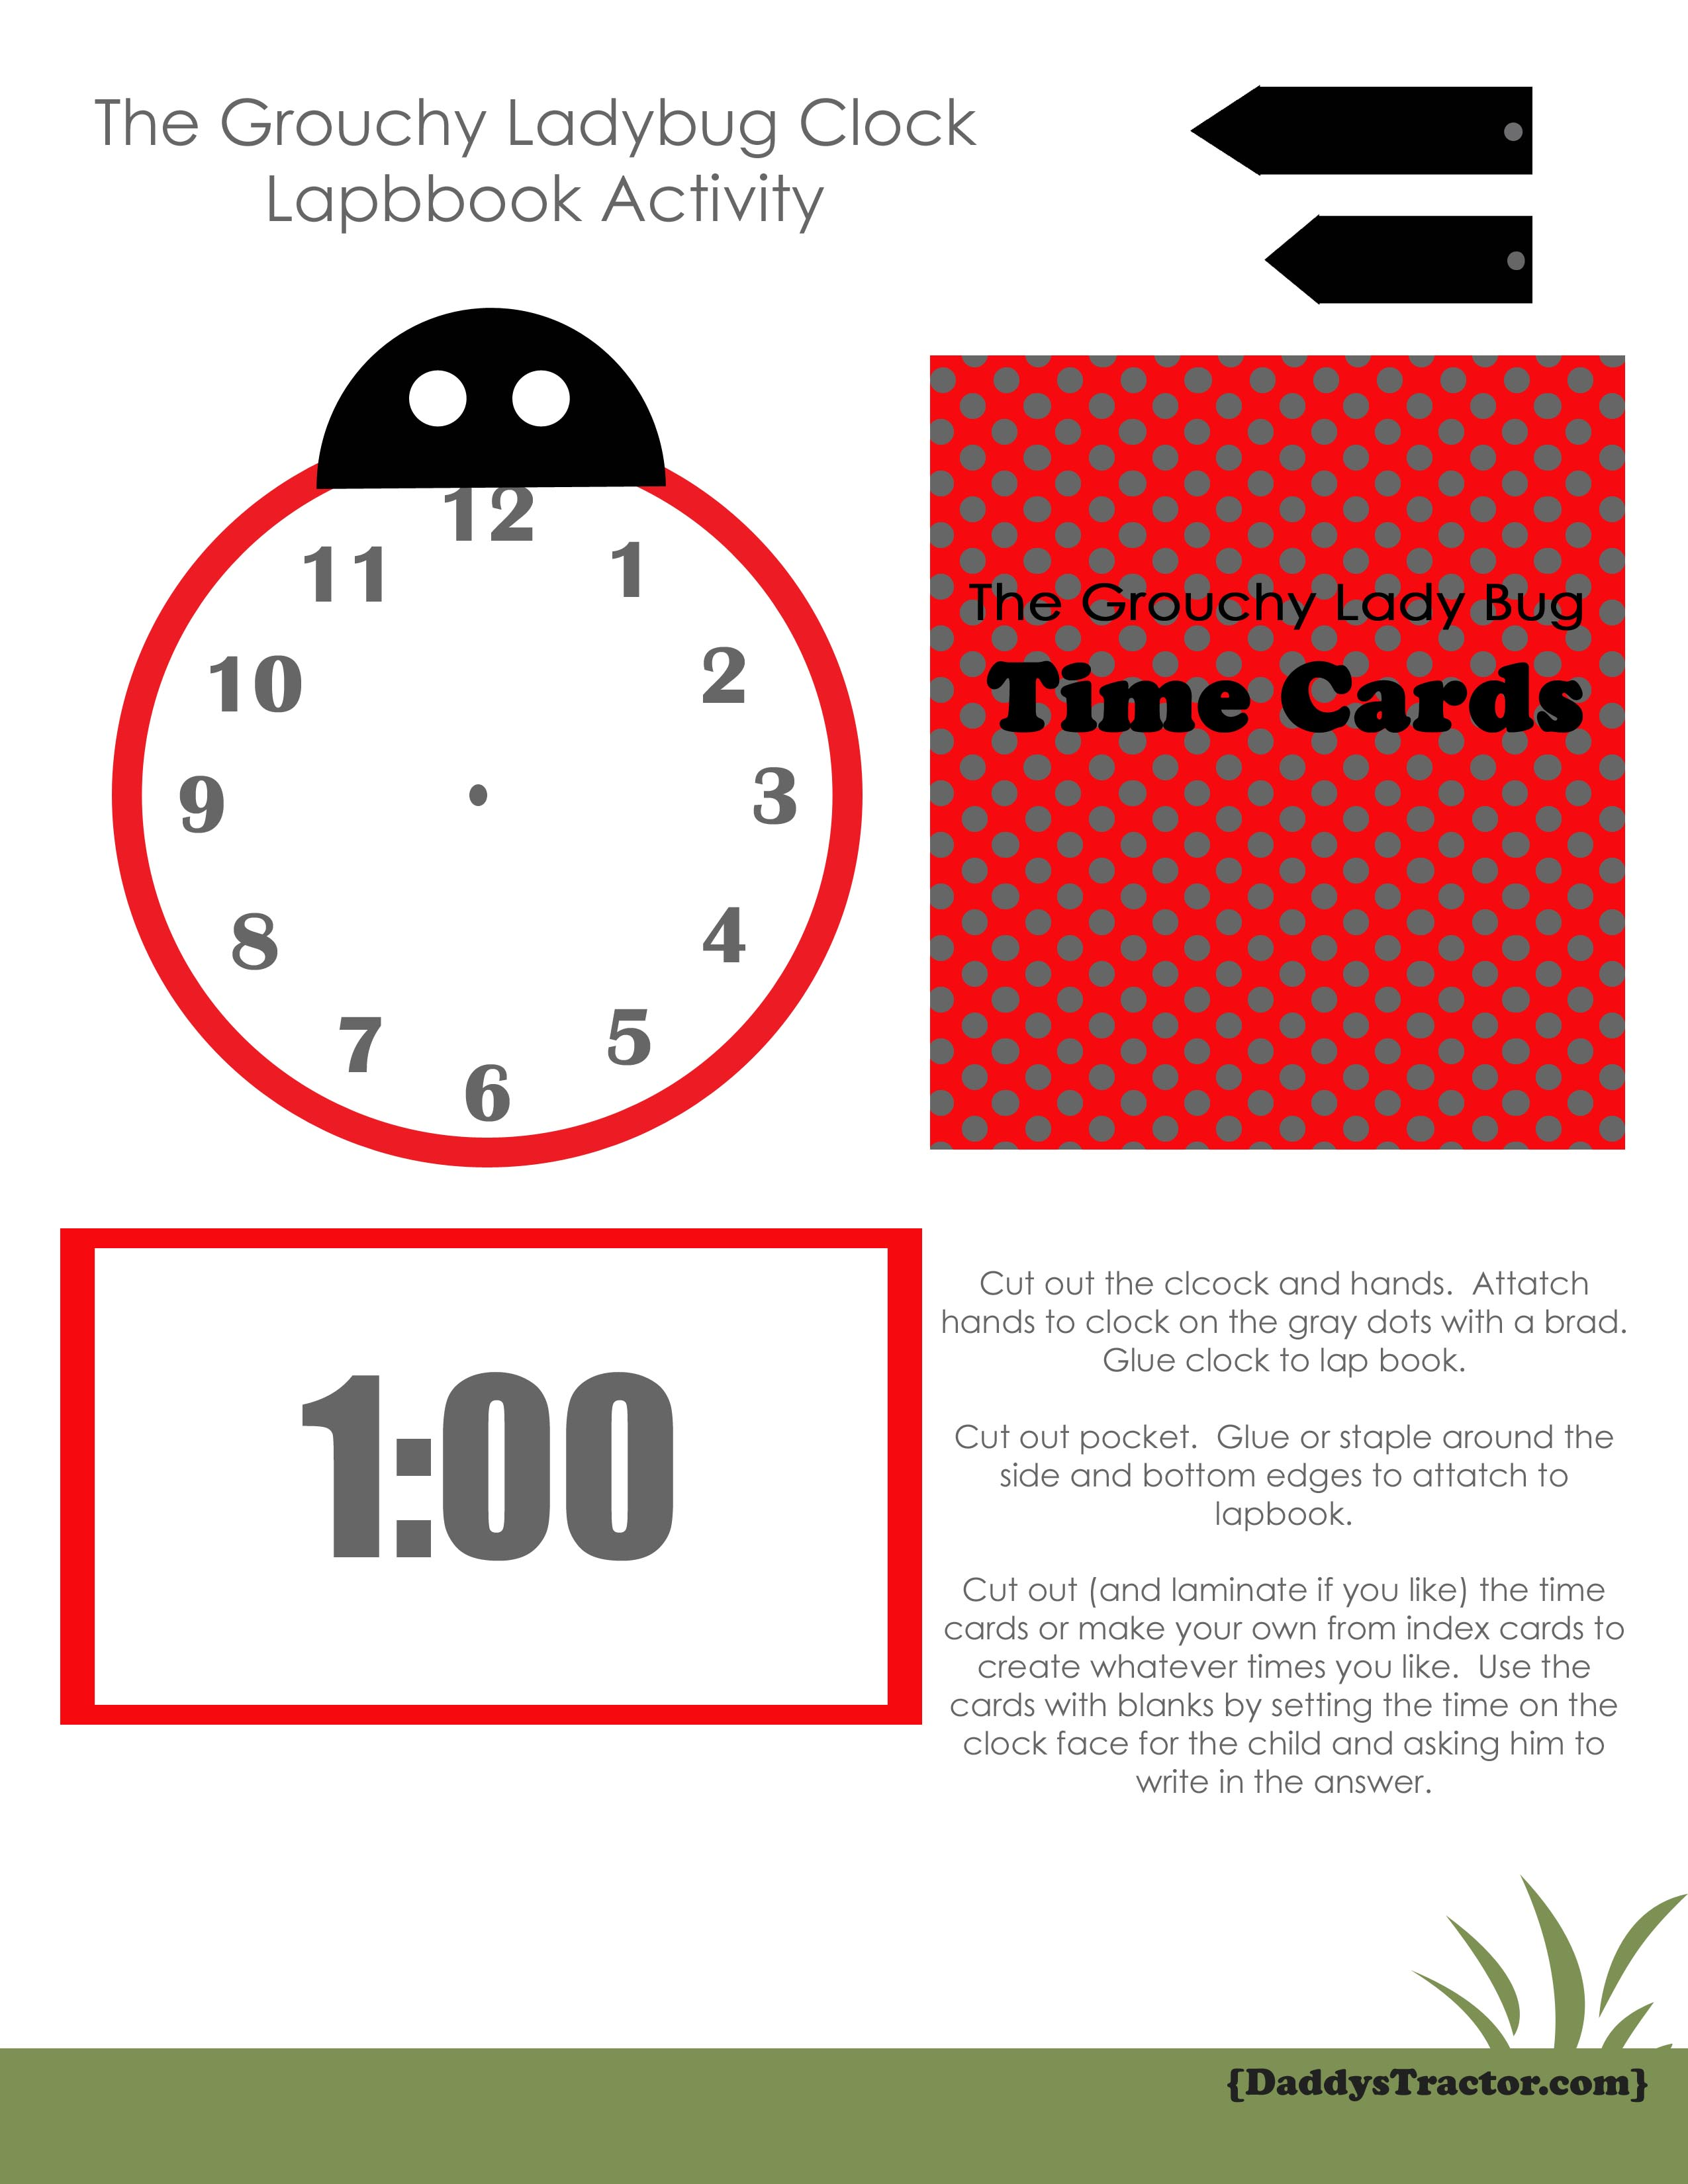 Grouchy Ladybug Insect Activity Or Lapbook